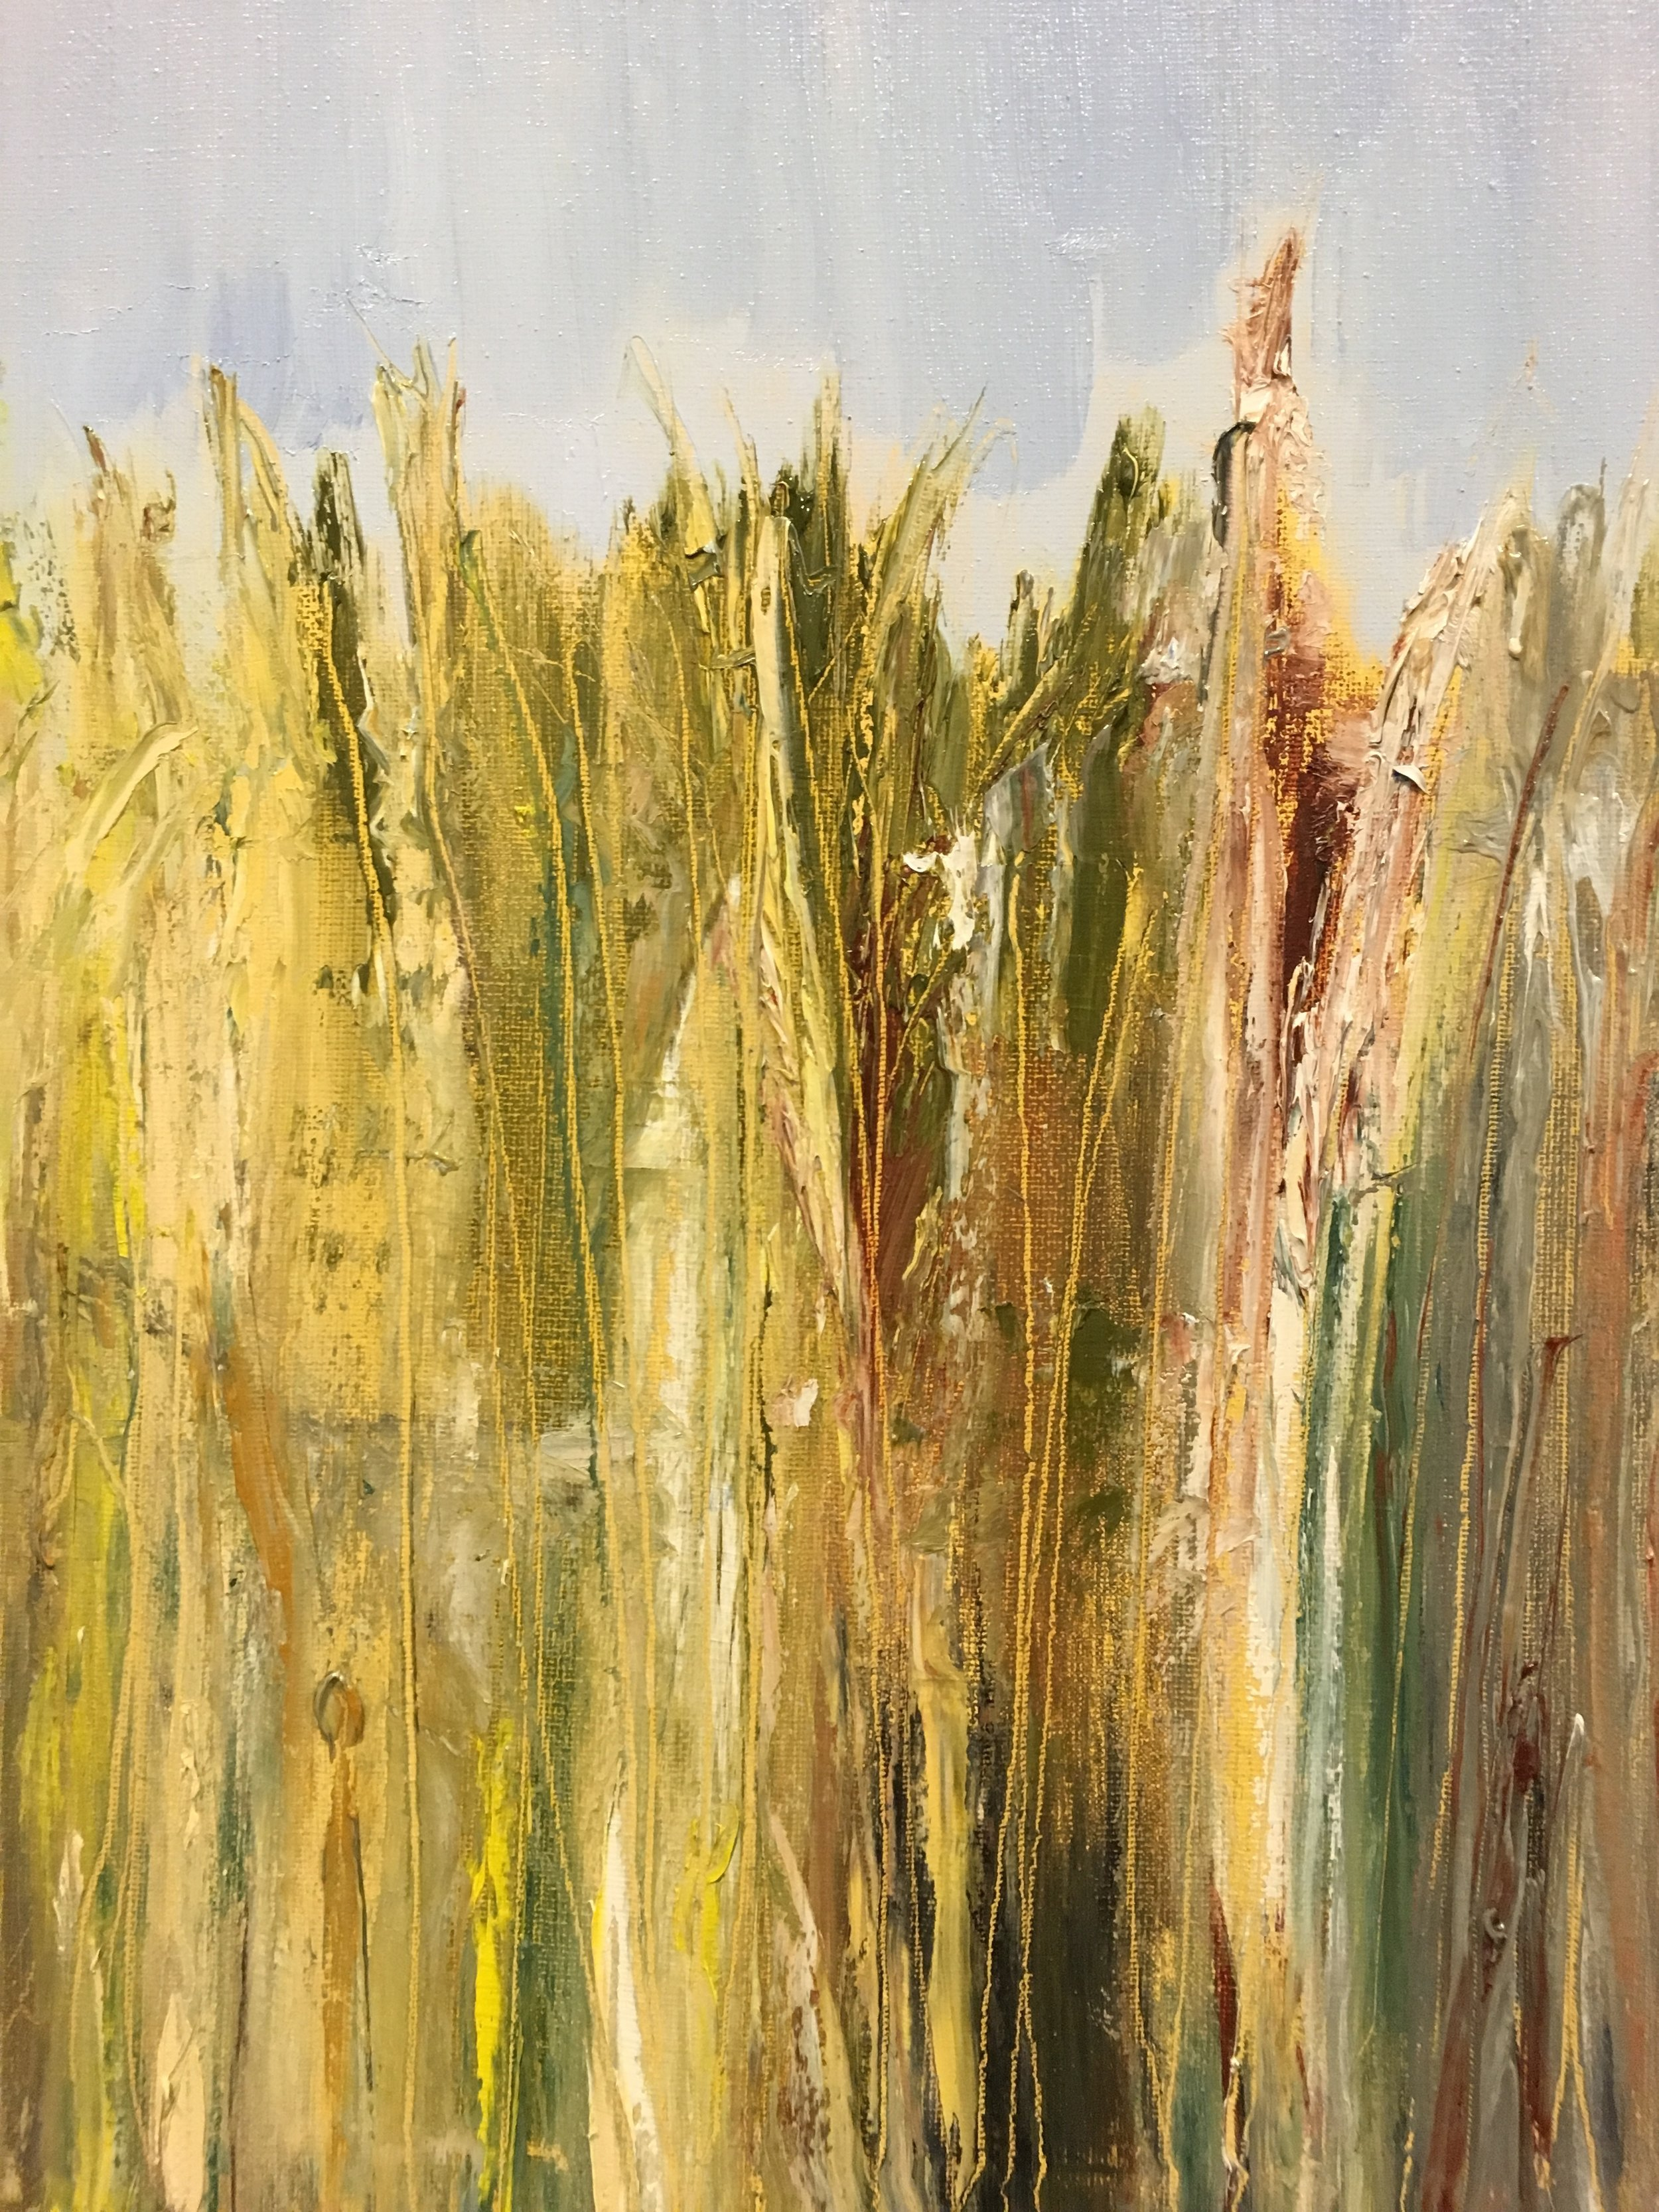 Sequim Wild Grasses  Oil on canvas, 14 x 11 in.